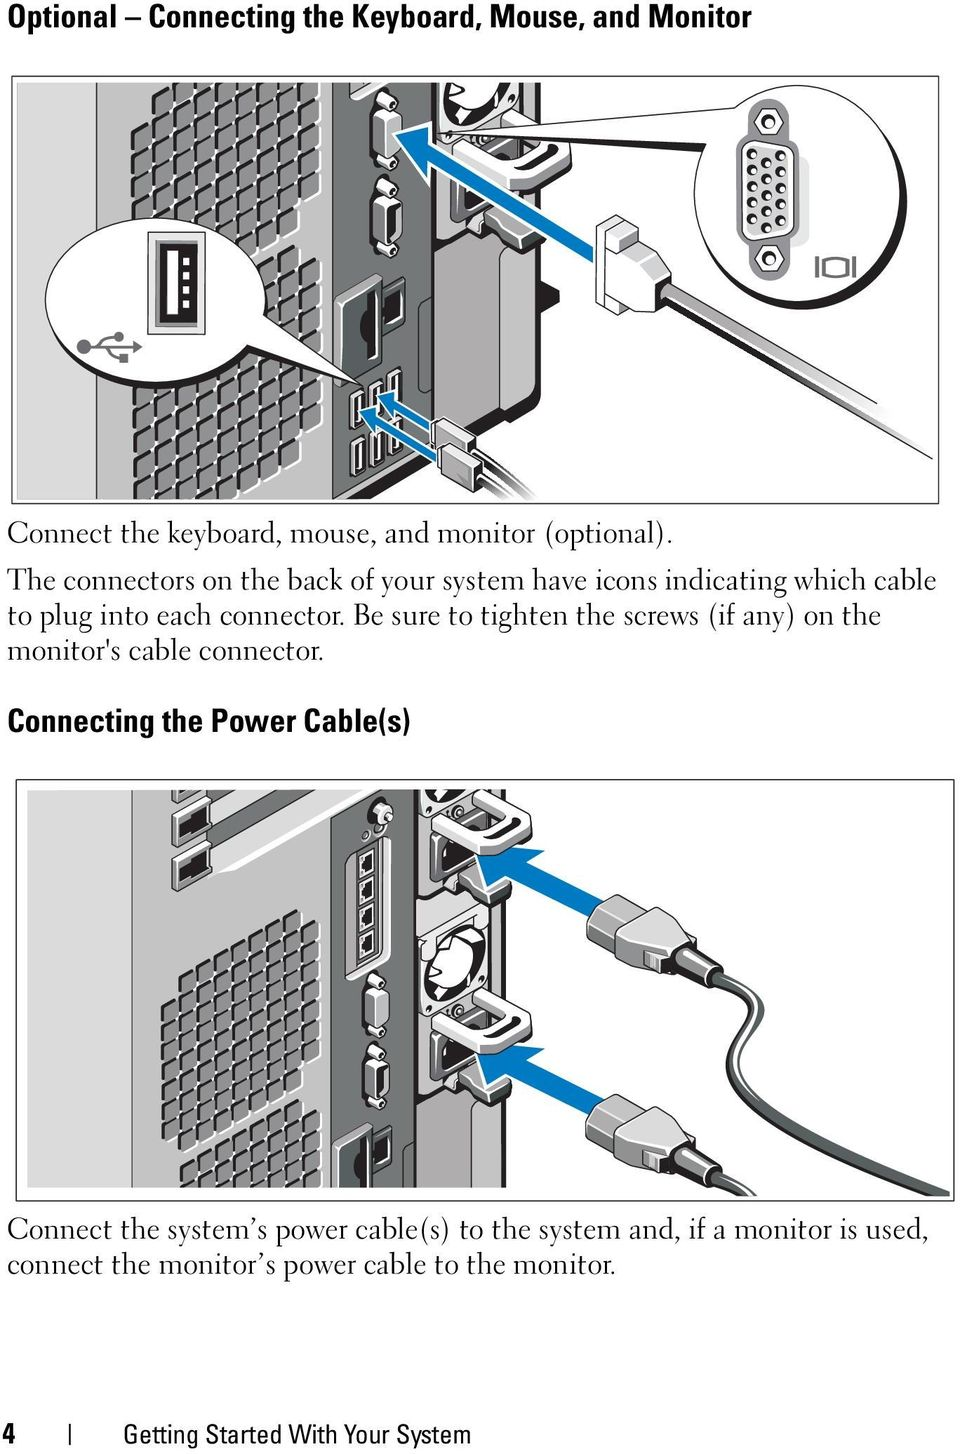 Be sure to tighten the screws (if any) on the monitor's cable connector.